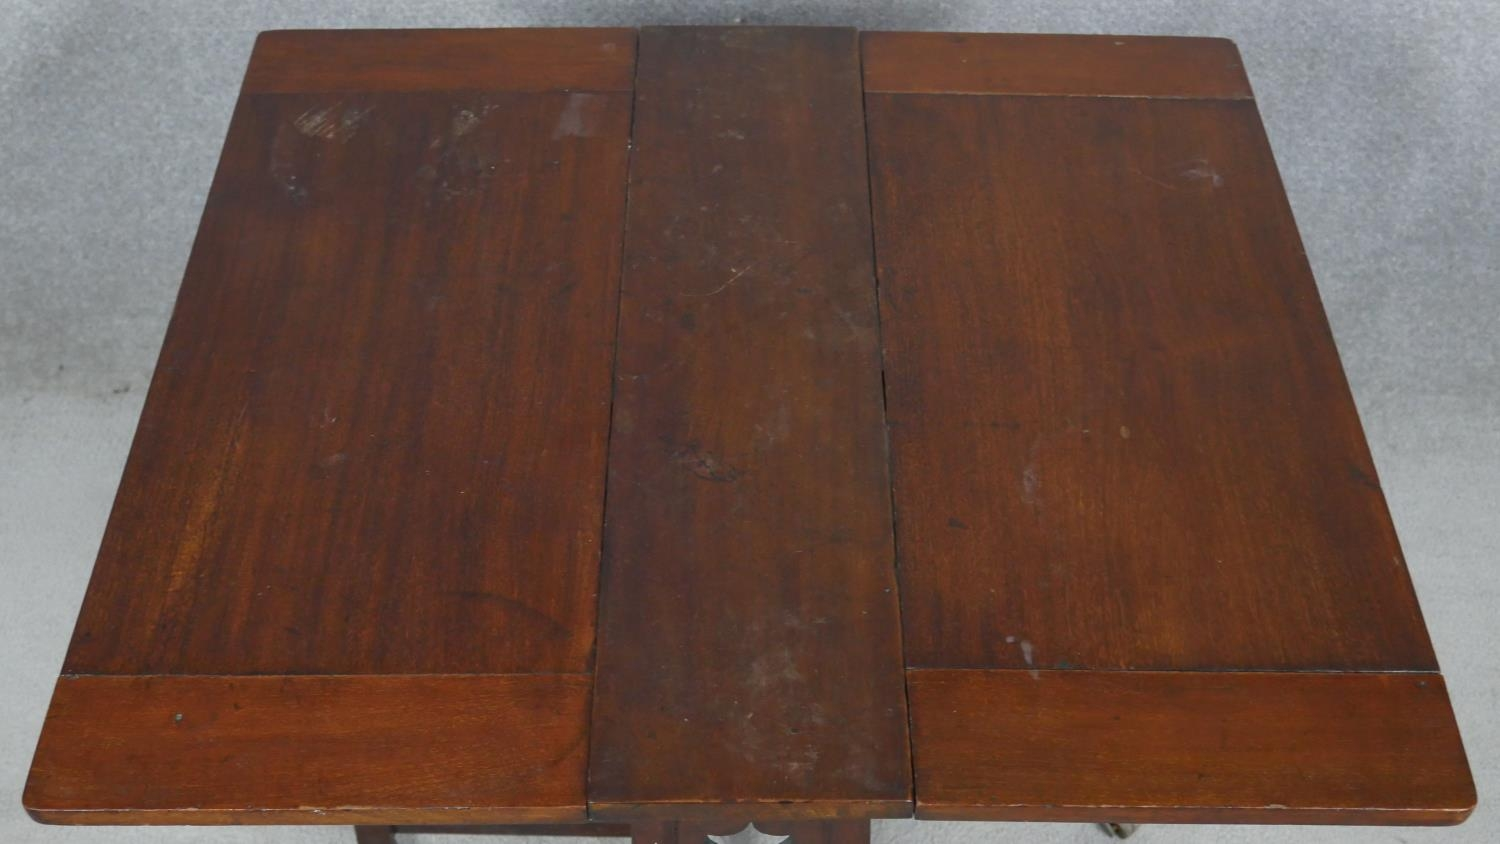 A late 19th century Art and Crafts walnut drop flap Sutherland table. H.57 L.69 W.64cm - Image 3 of 4